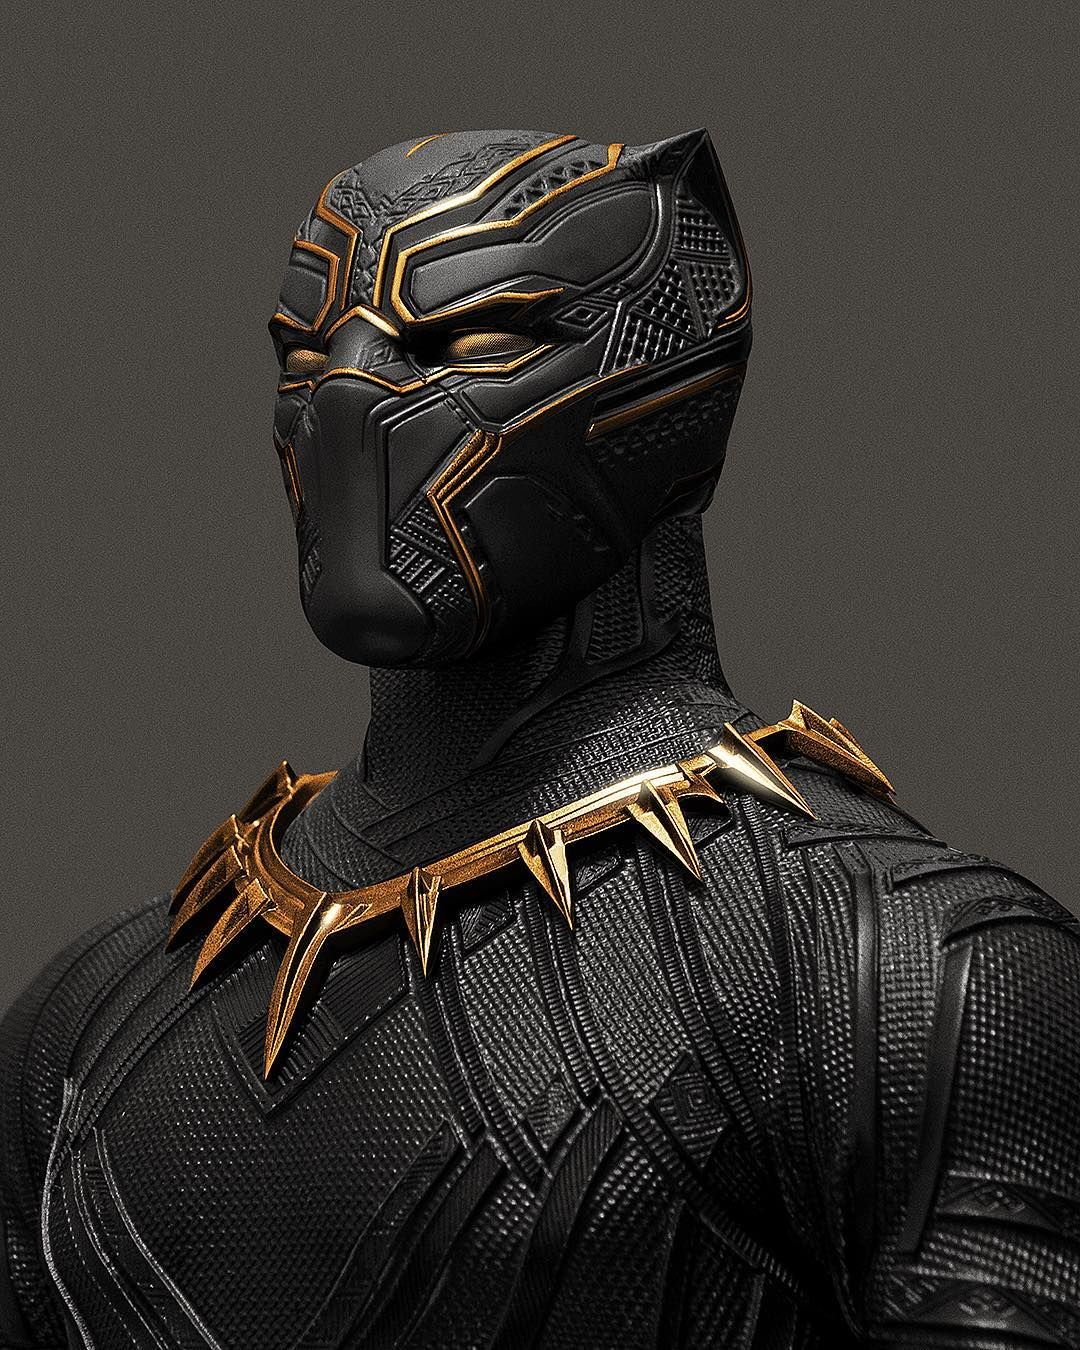 Modified Action Figure Makes The Black Panther Suit Look Even Better